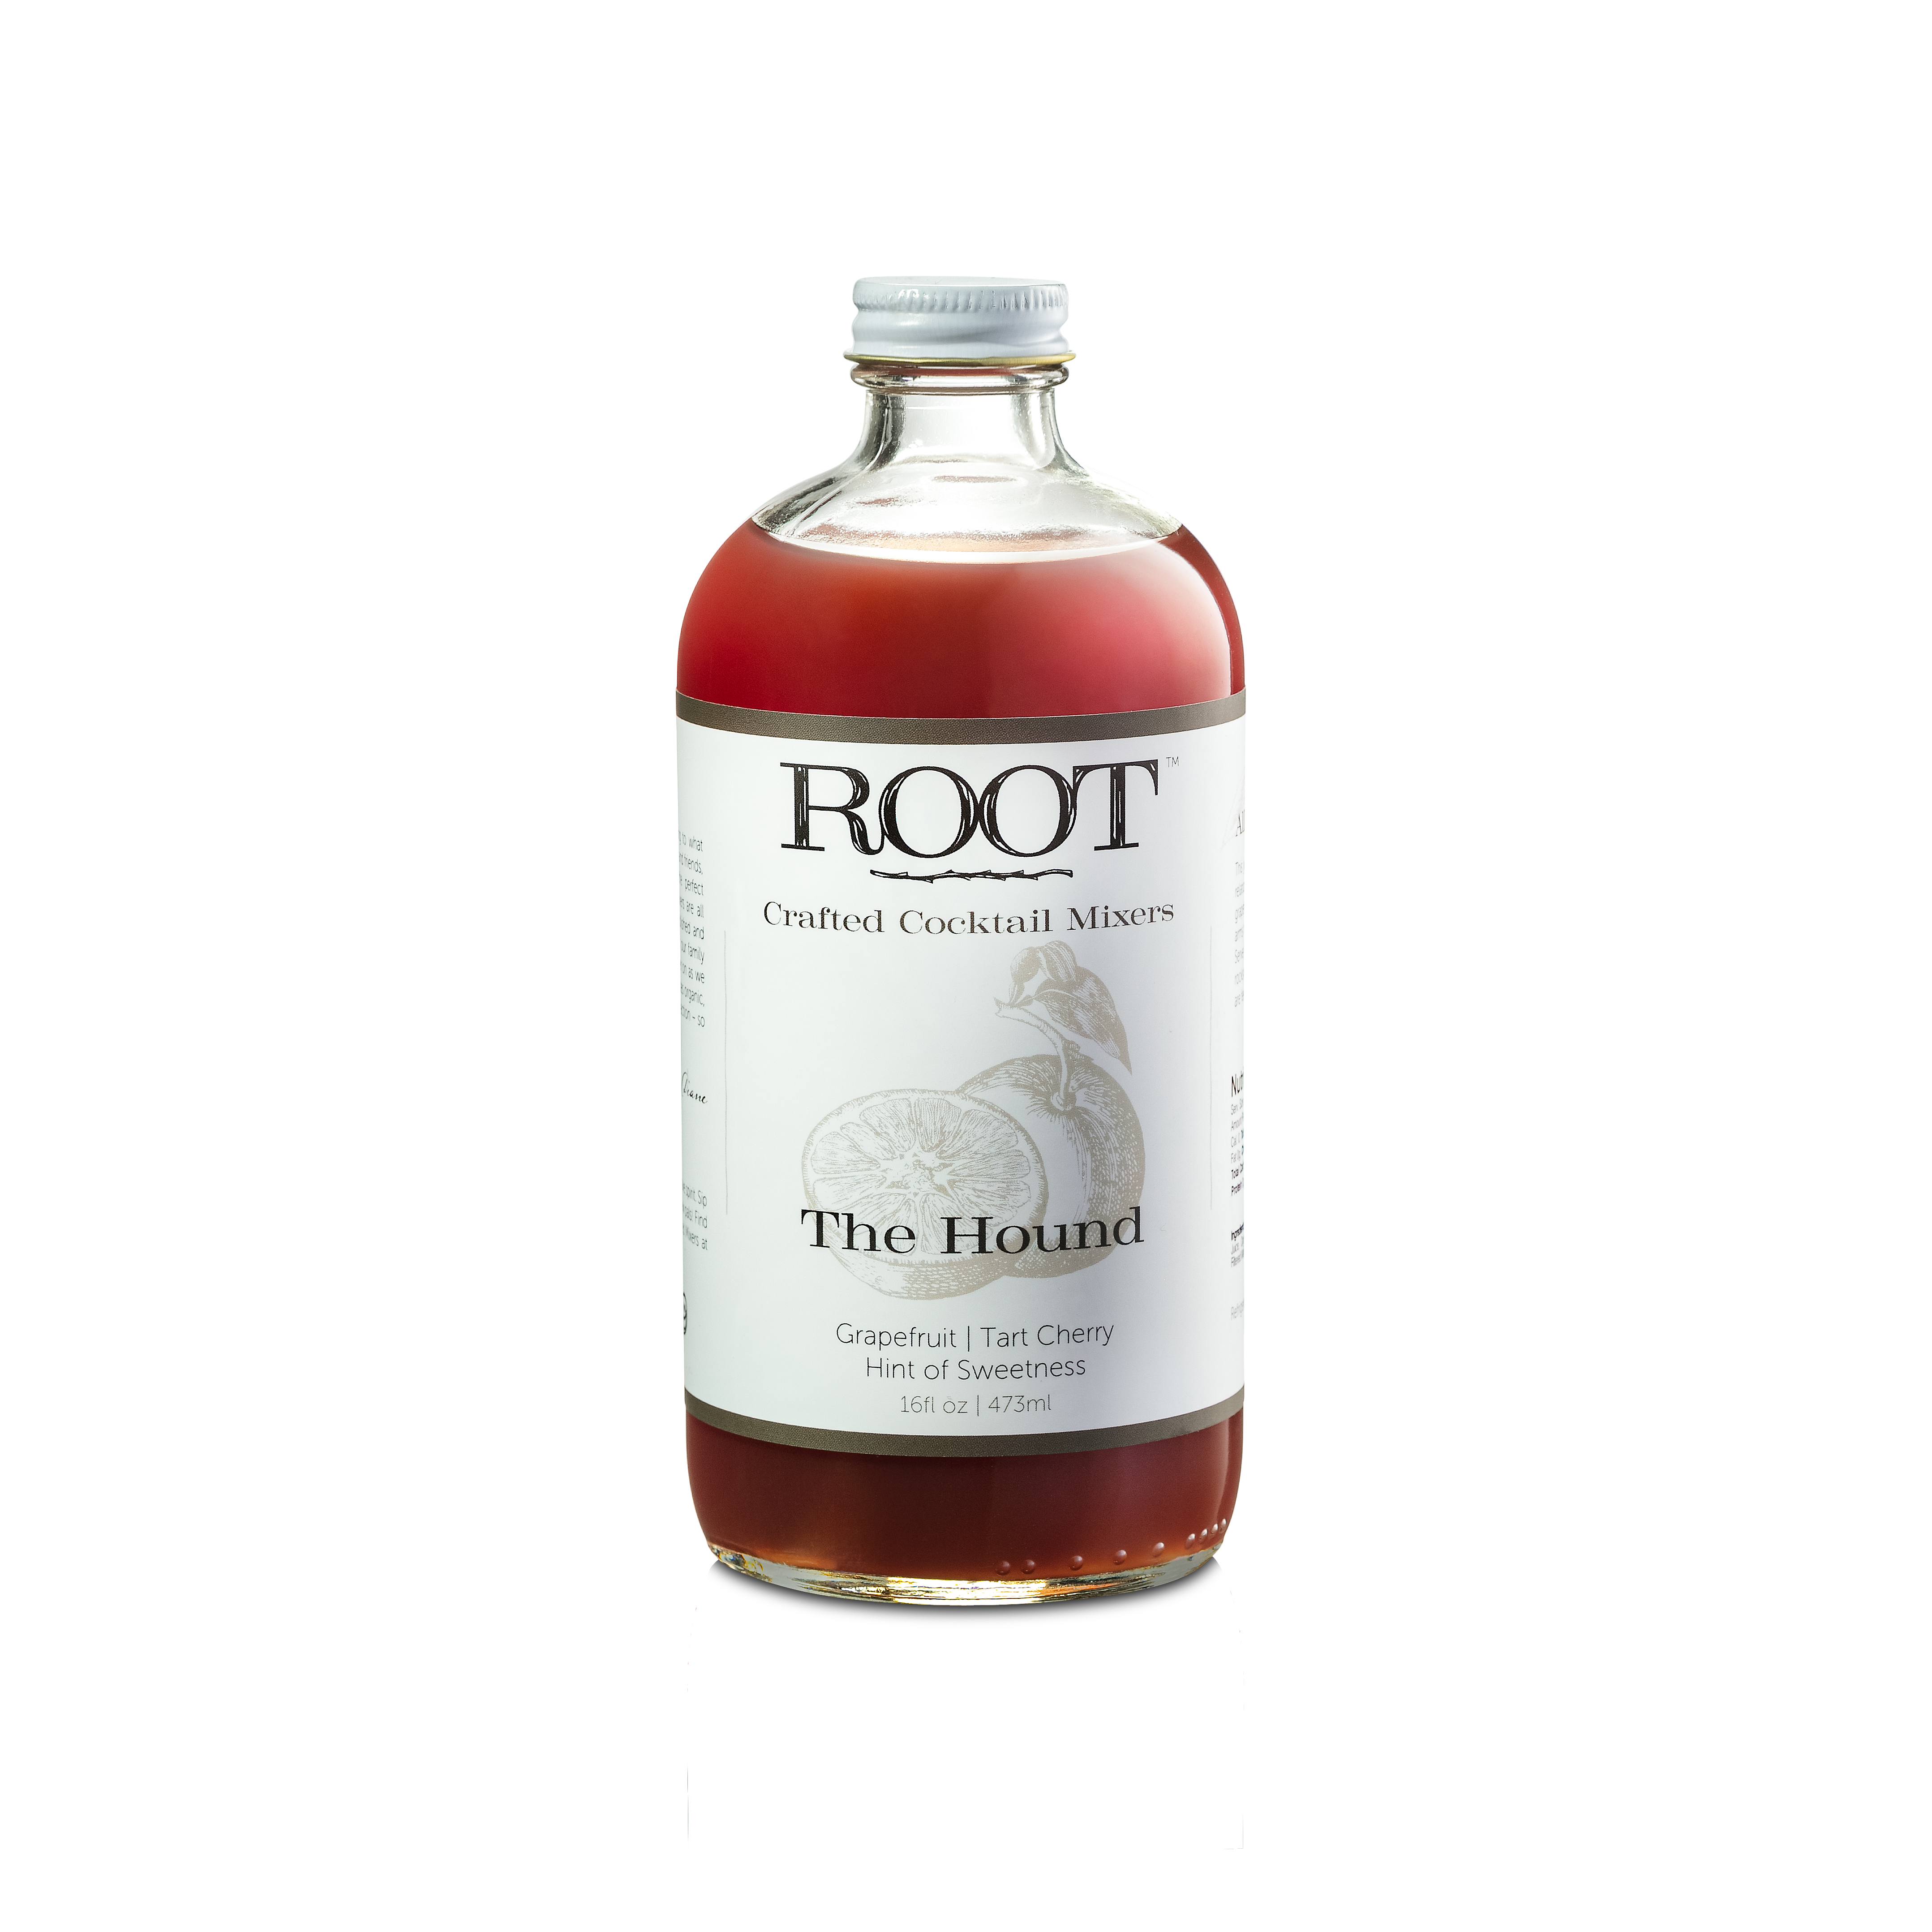 Photo of The Hound  - ROOT Crafted Cocktail Mixers (uploaded by company)